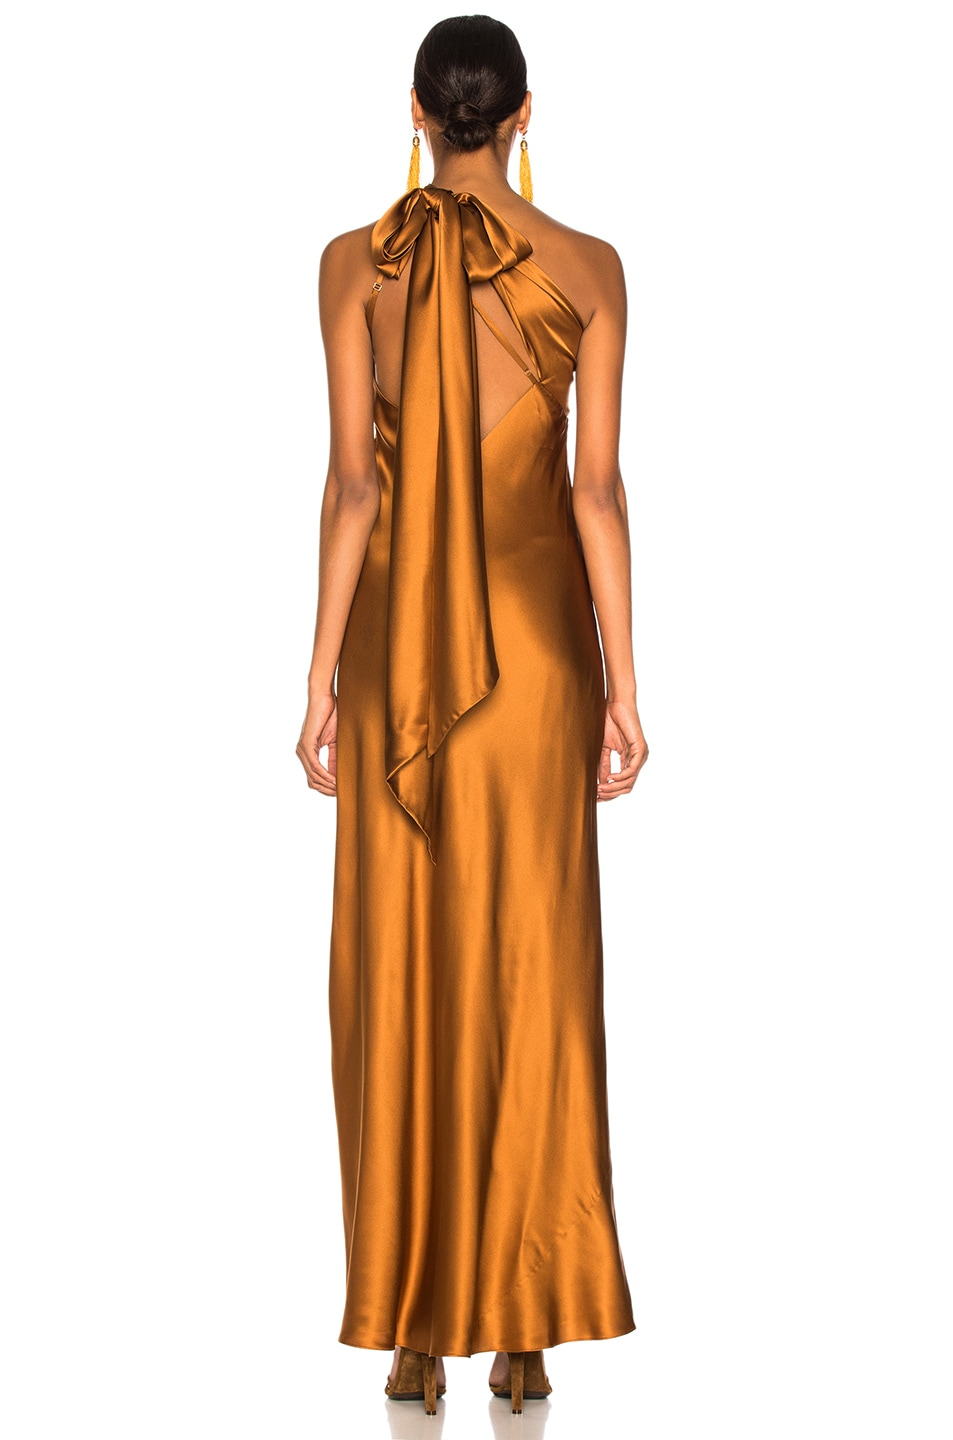 6a9060d3af626 Image 4 of Michelle Mason One Shoulder Gown With Tie in Toffee